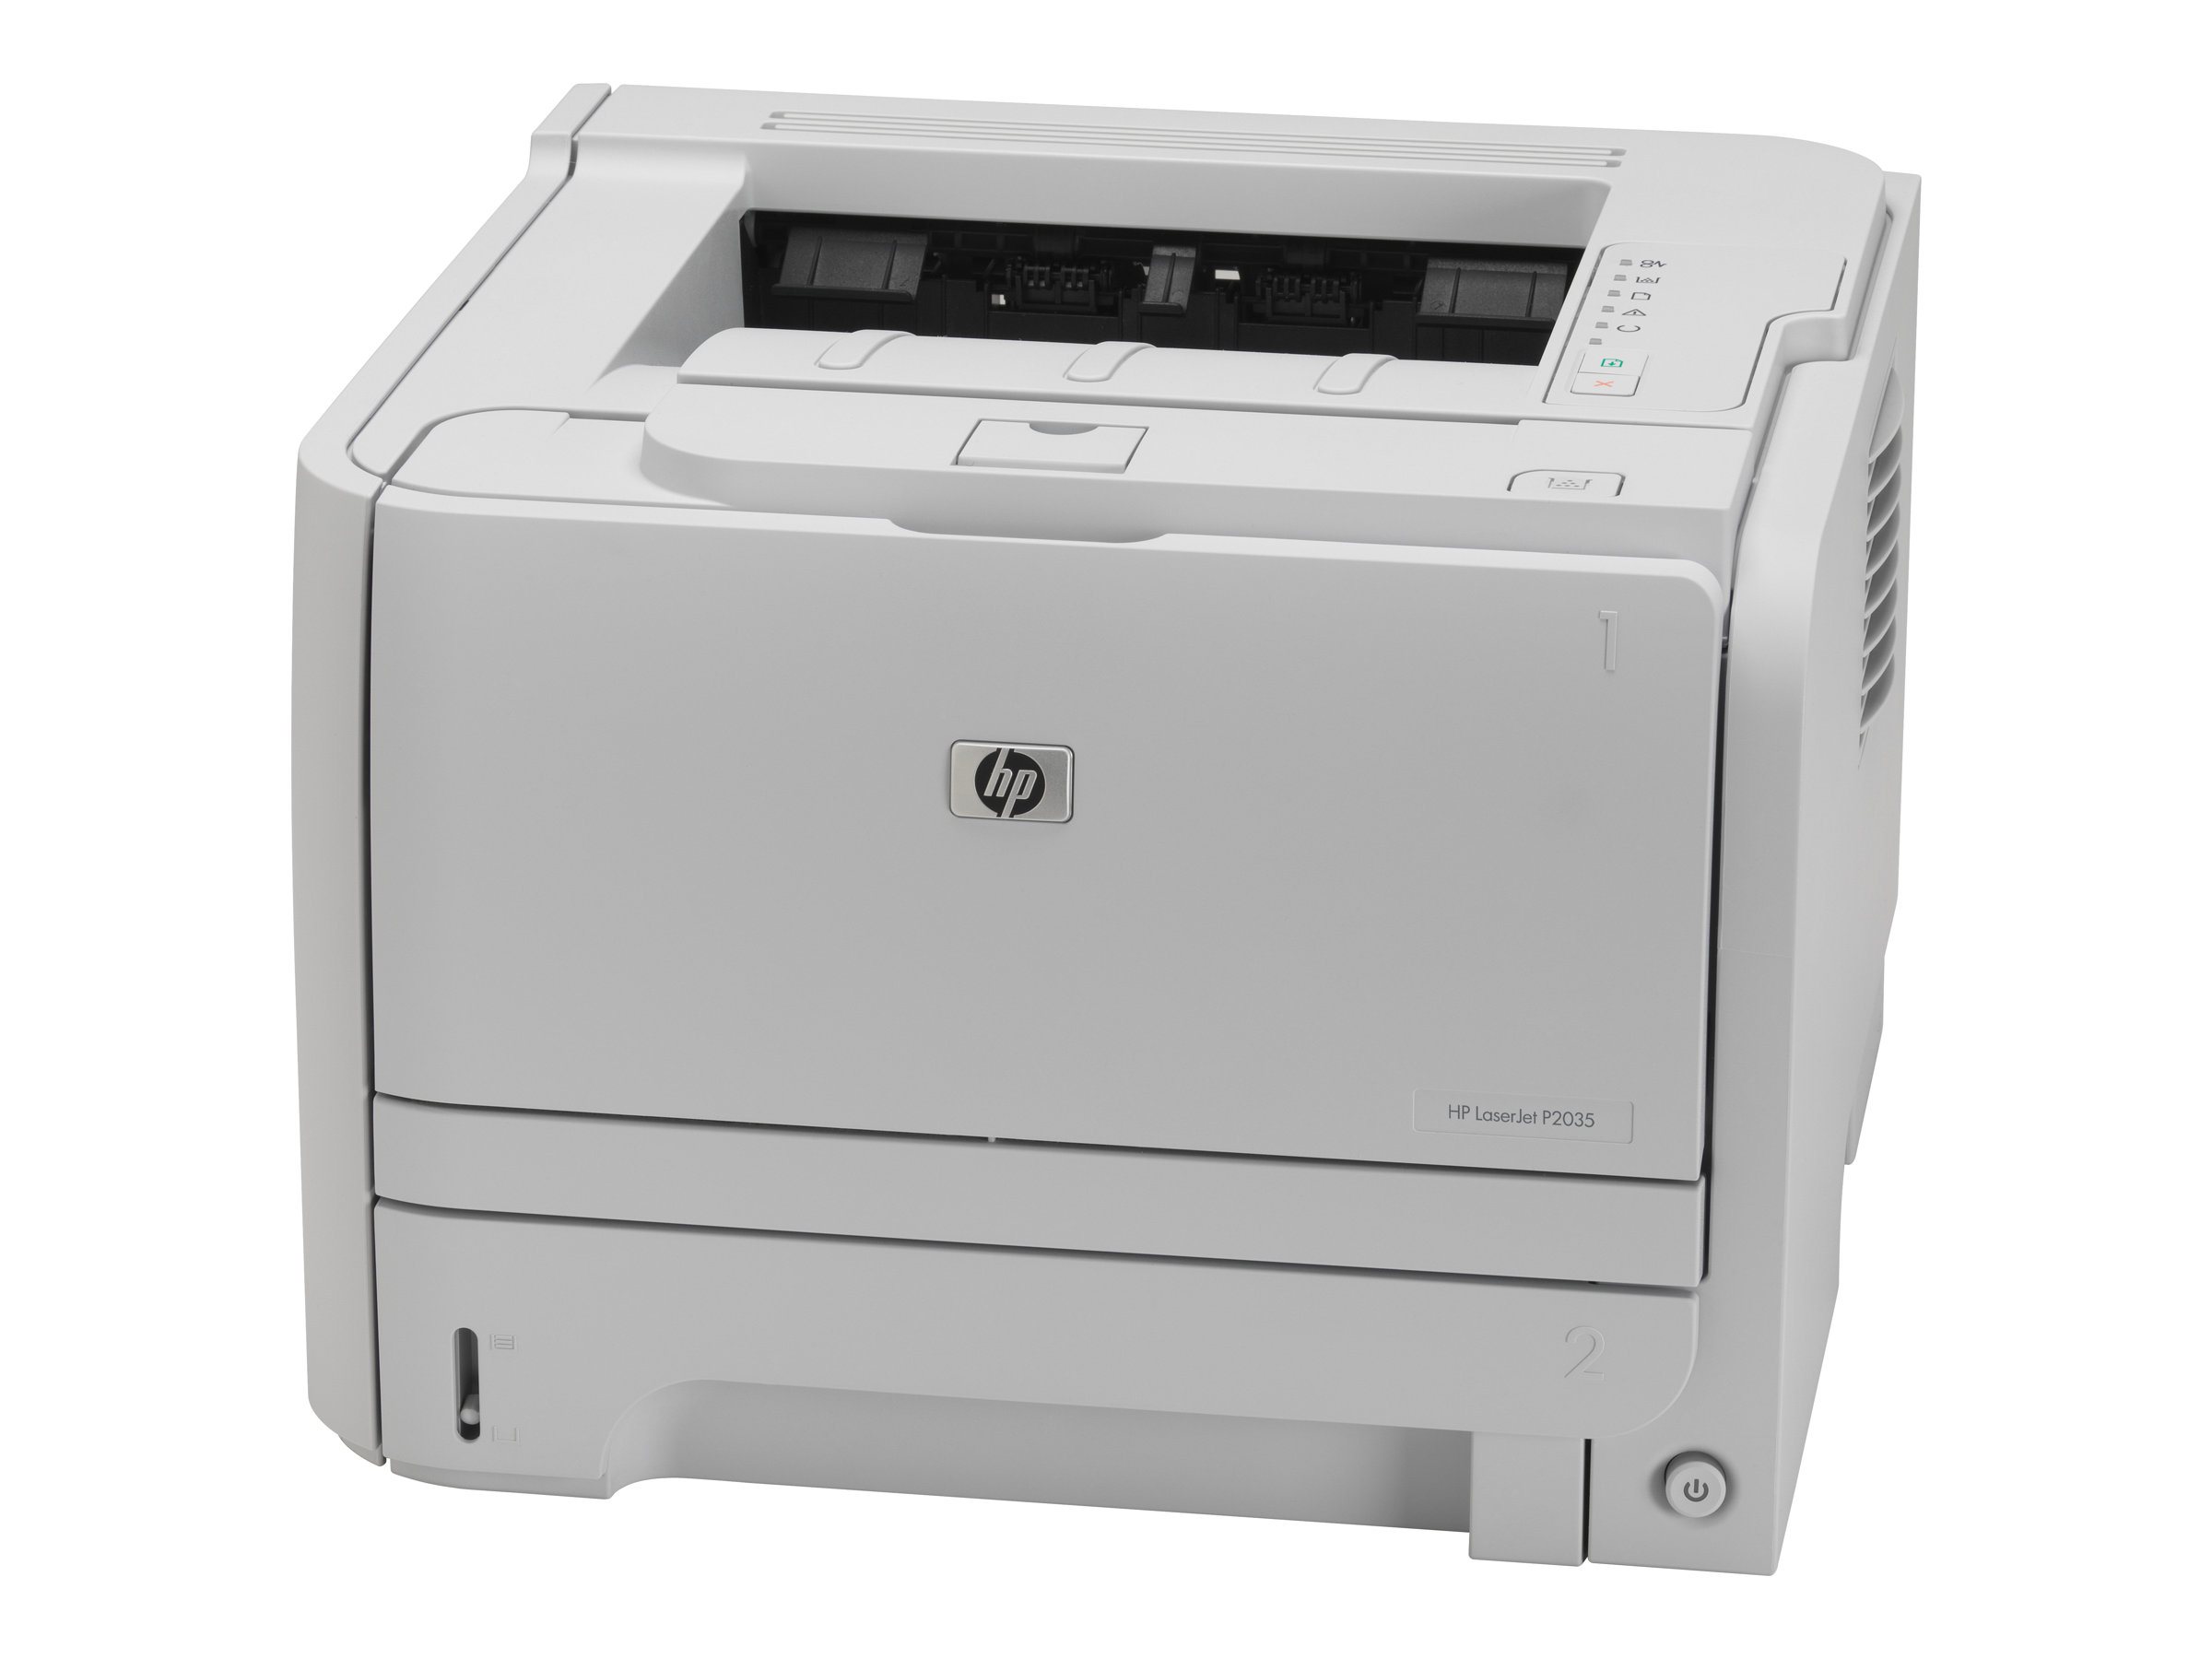 hp laserjet p2035 imprimante monochrome laser imprimantes laser neuves. Black Bedroom Furniture Sets. Home Design Ideas